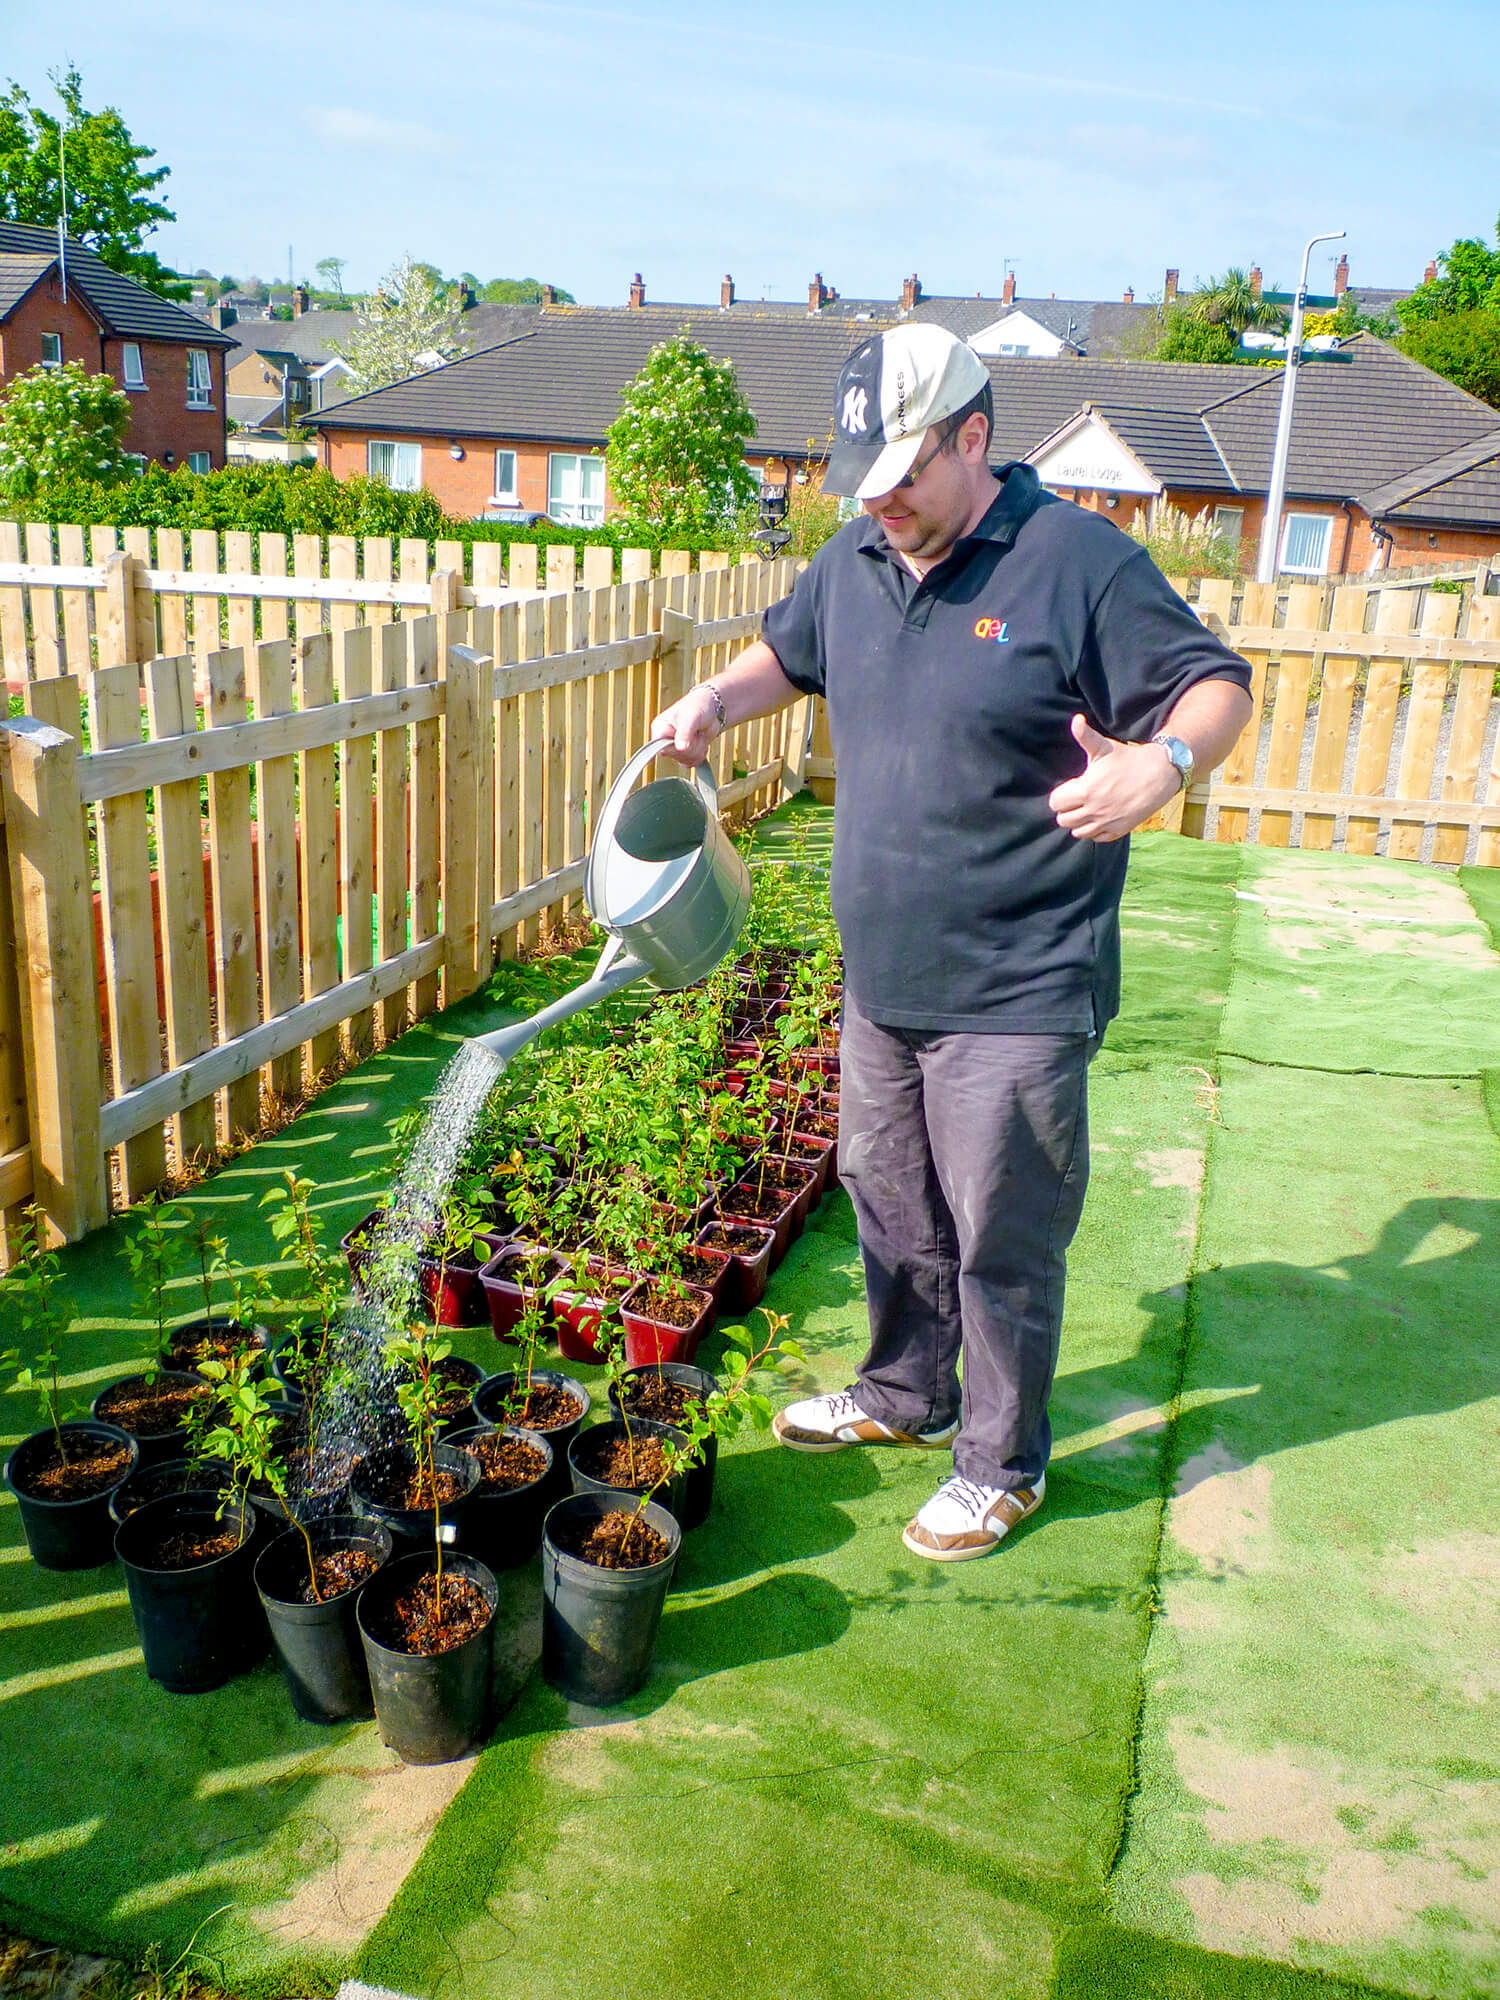 Watering plants at the Allotments at AEL